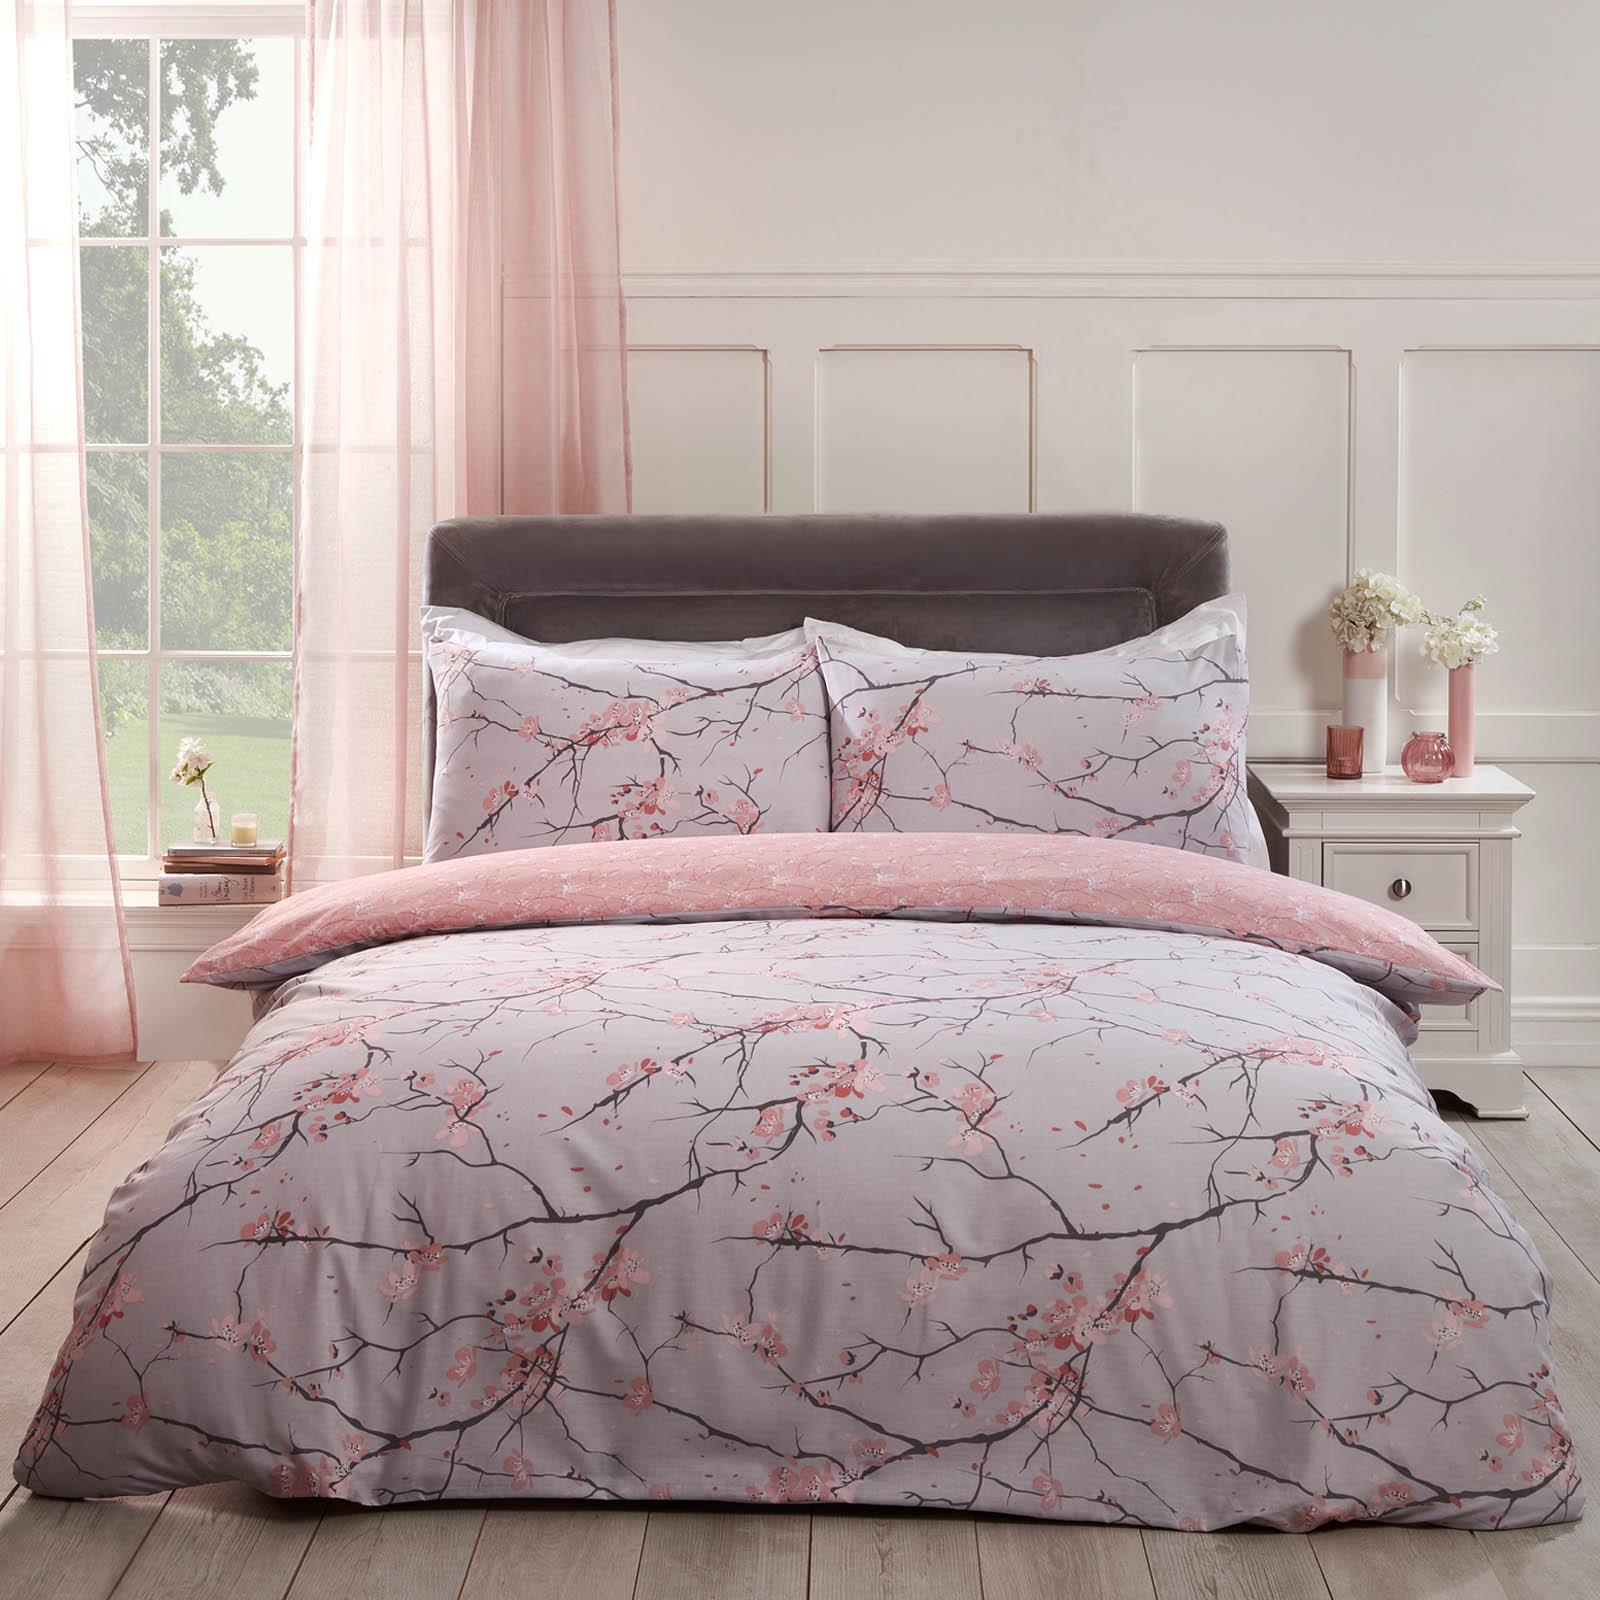 thumbnail 13 - Dreamscene Spring Blossoms Duvet Cover with Pillowcases Bedding Set Blush Ochre